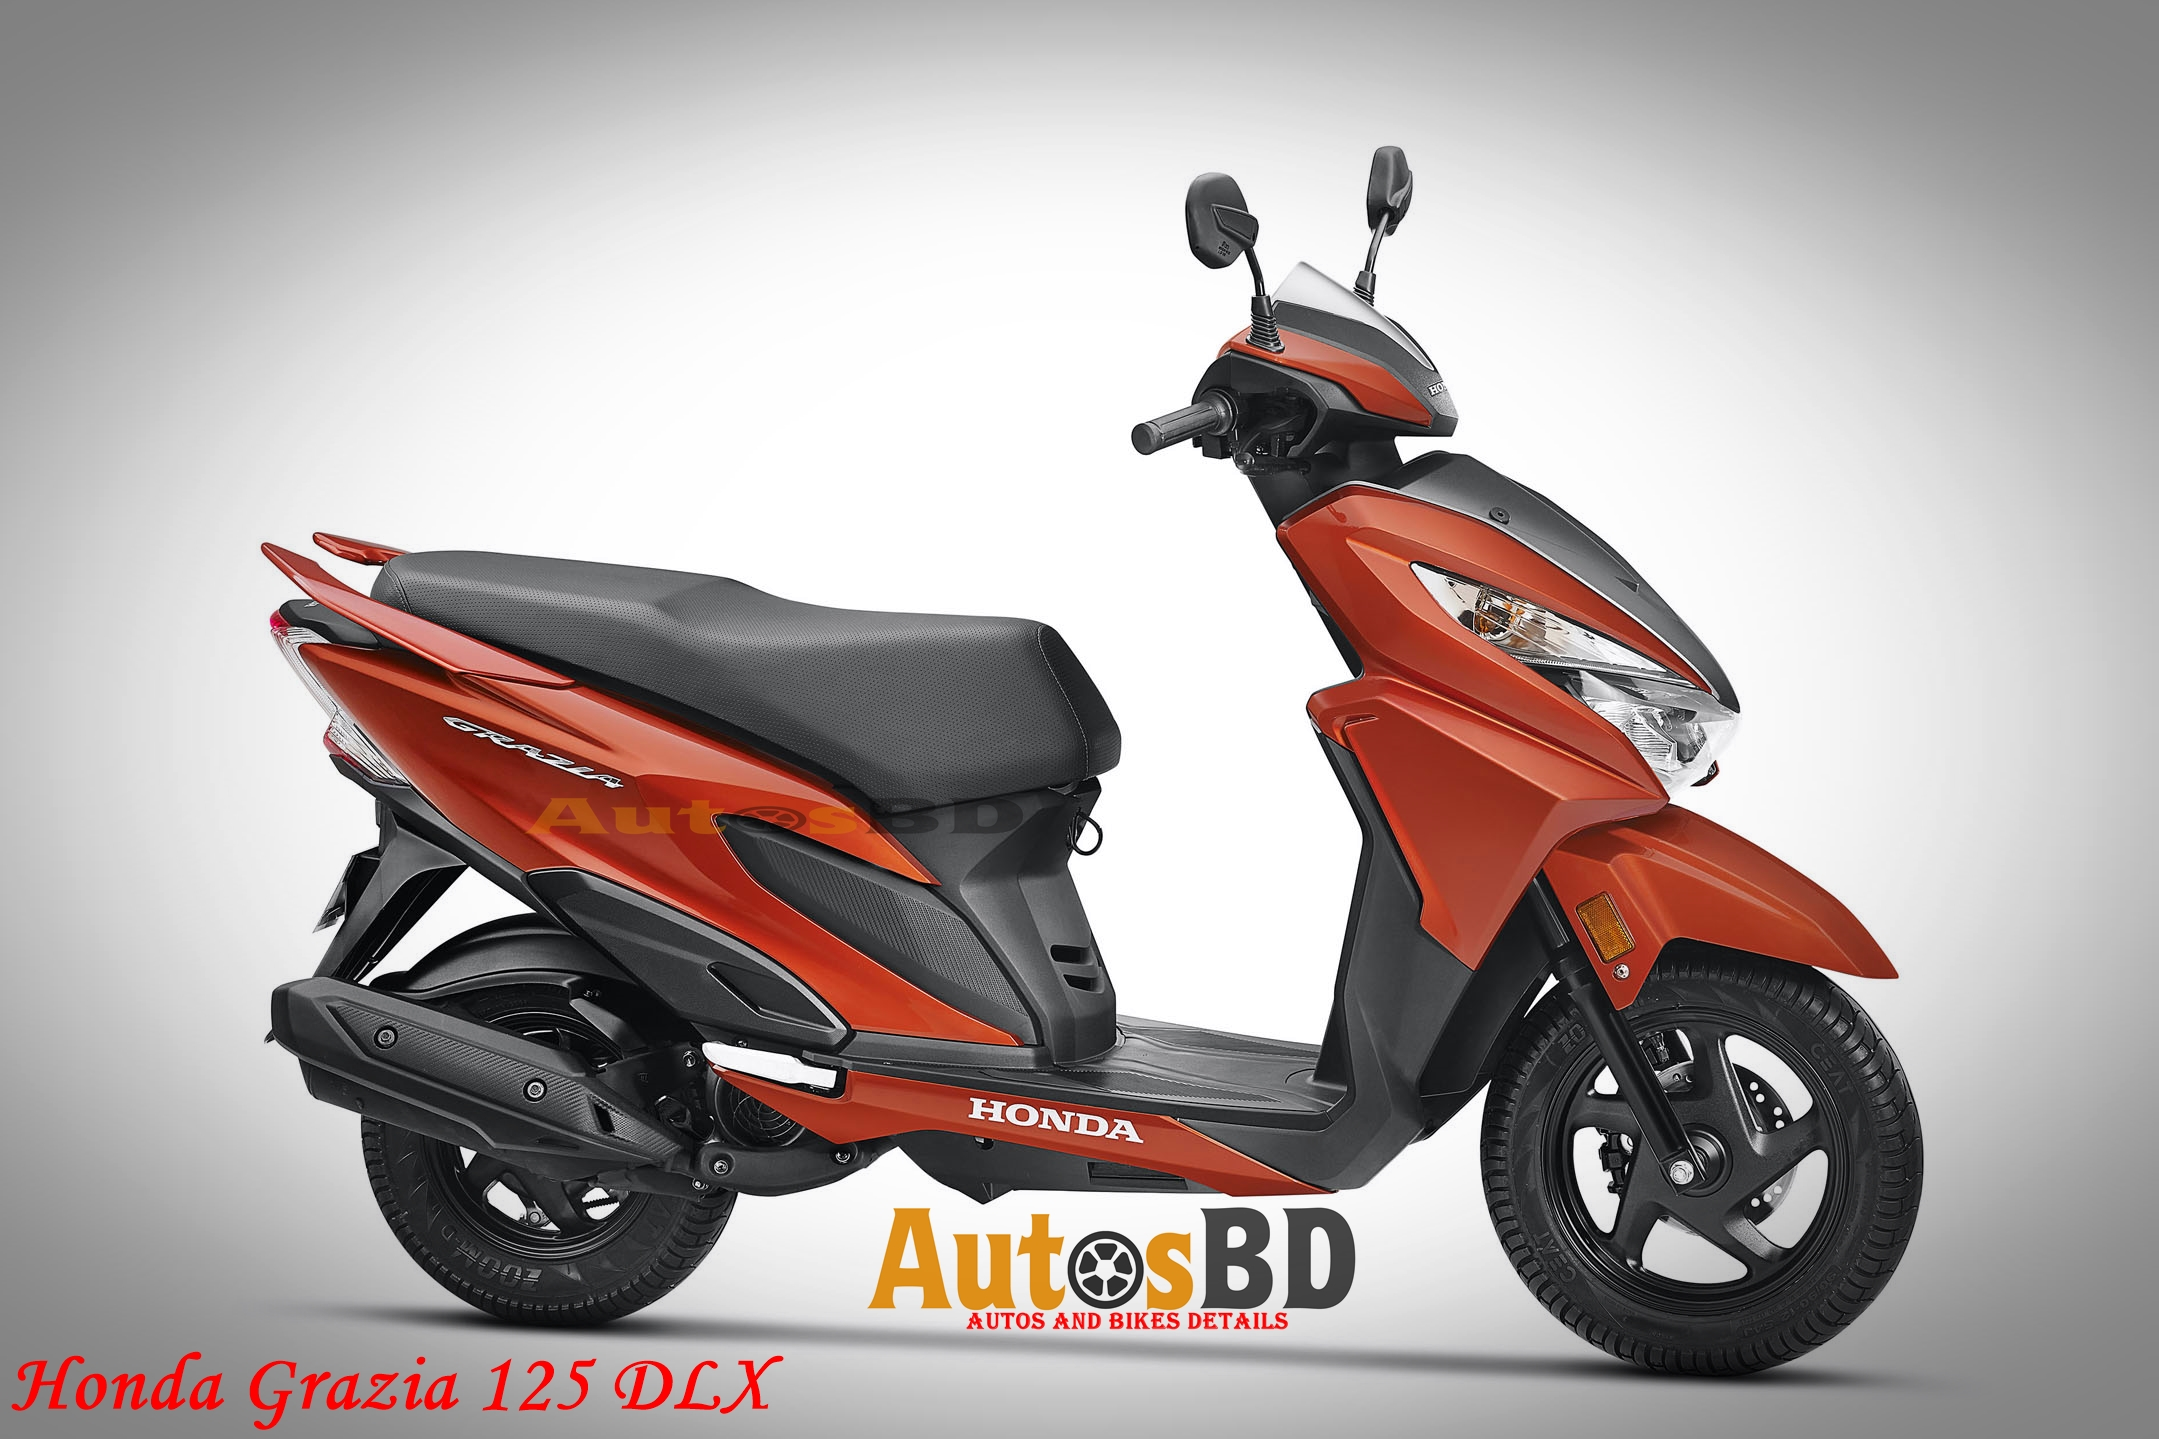 Honda Grazia 125 DLX Motorcycle Specification